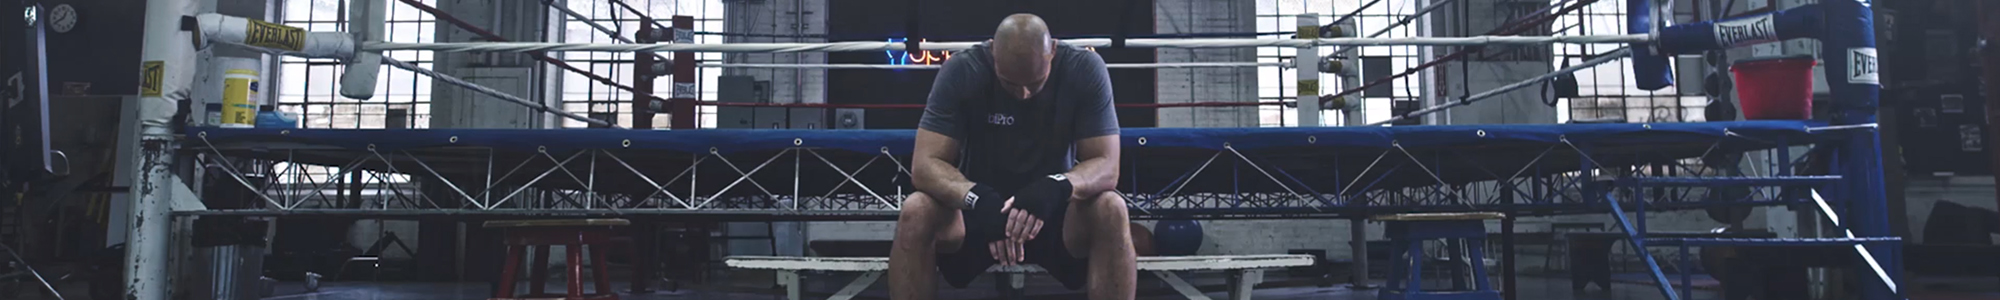 Boxing with ben leber - BiPro Commercial